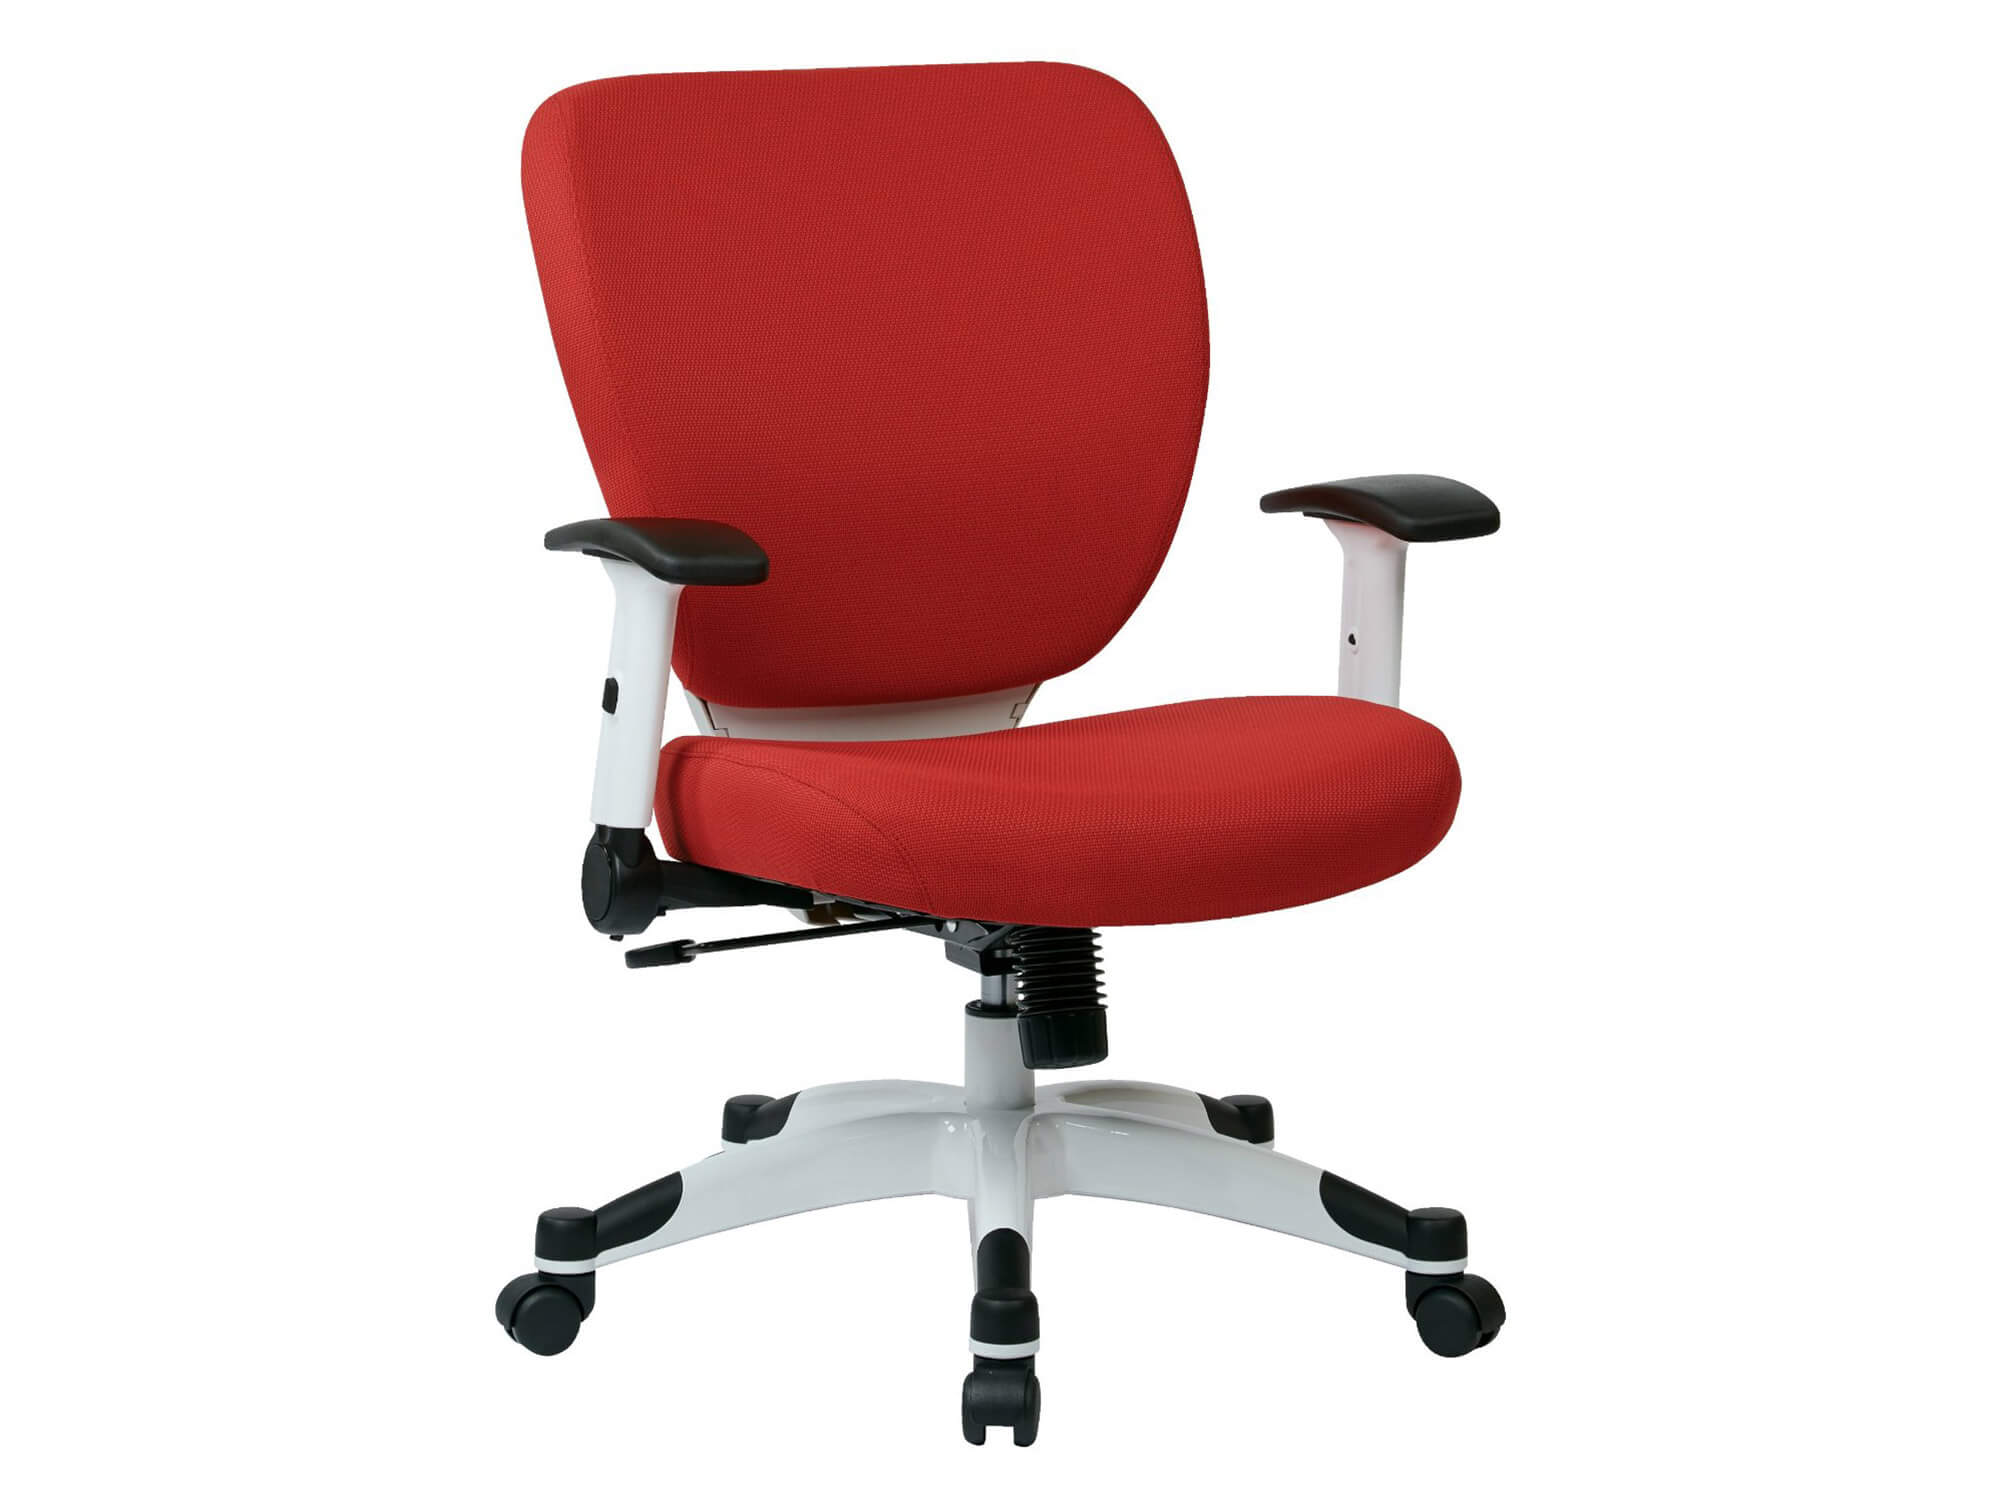 Office task chairs CUB 5200W 5812 PSO